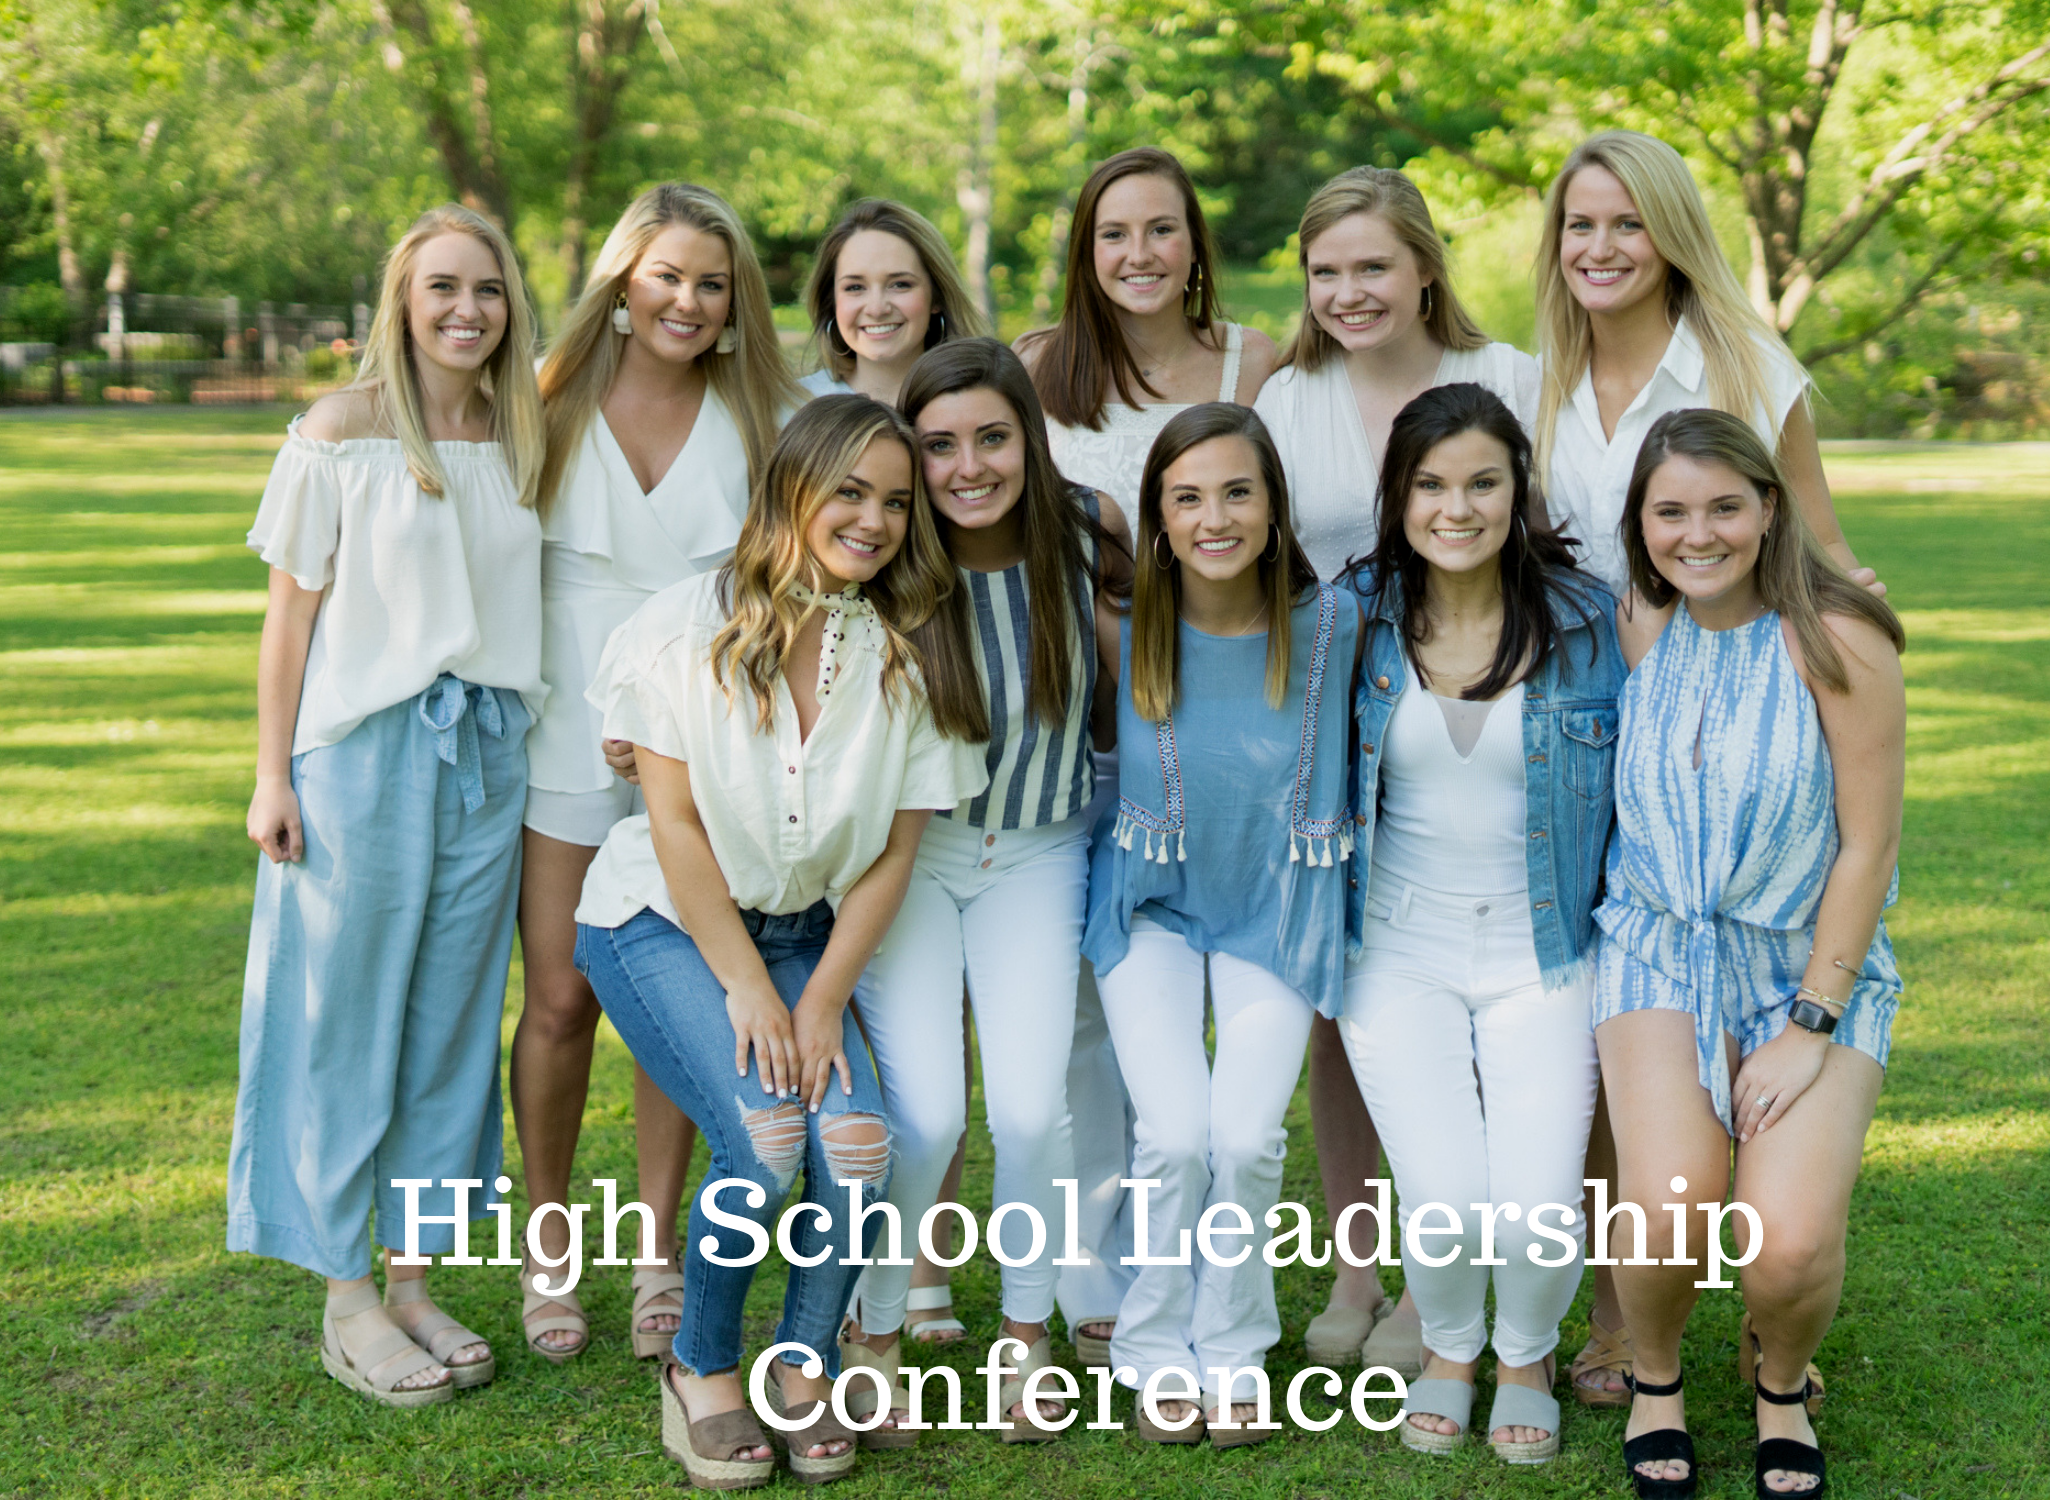 High School Leadership Conference.png